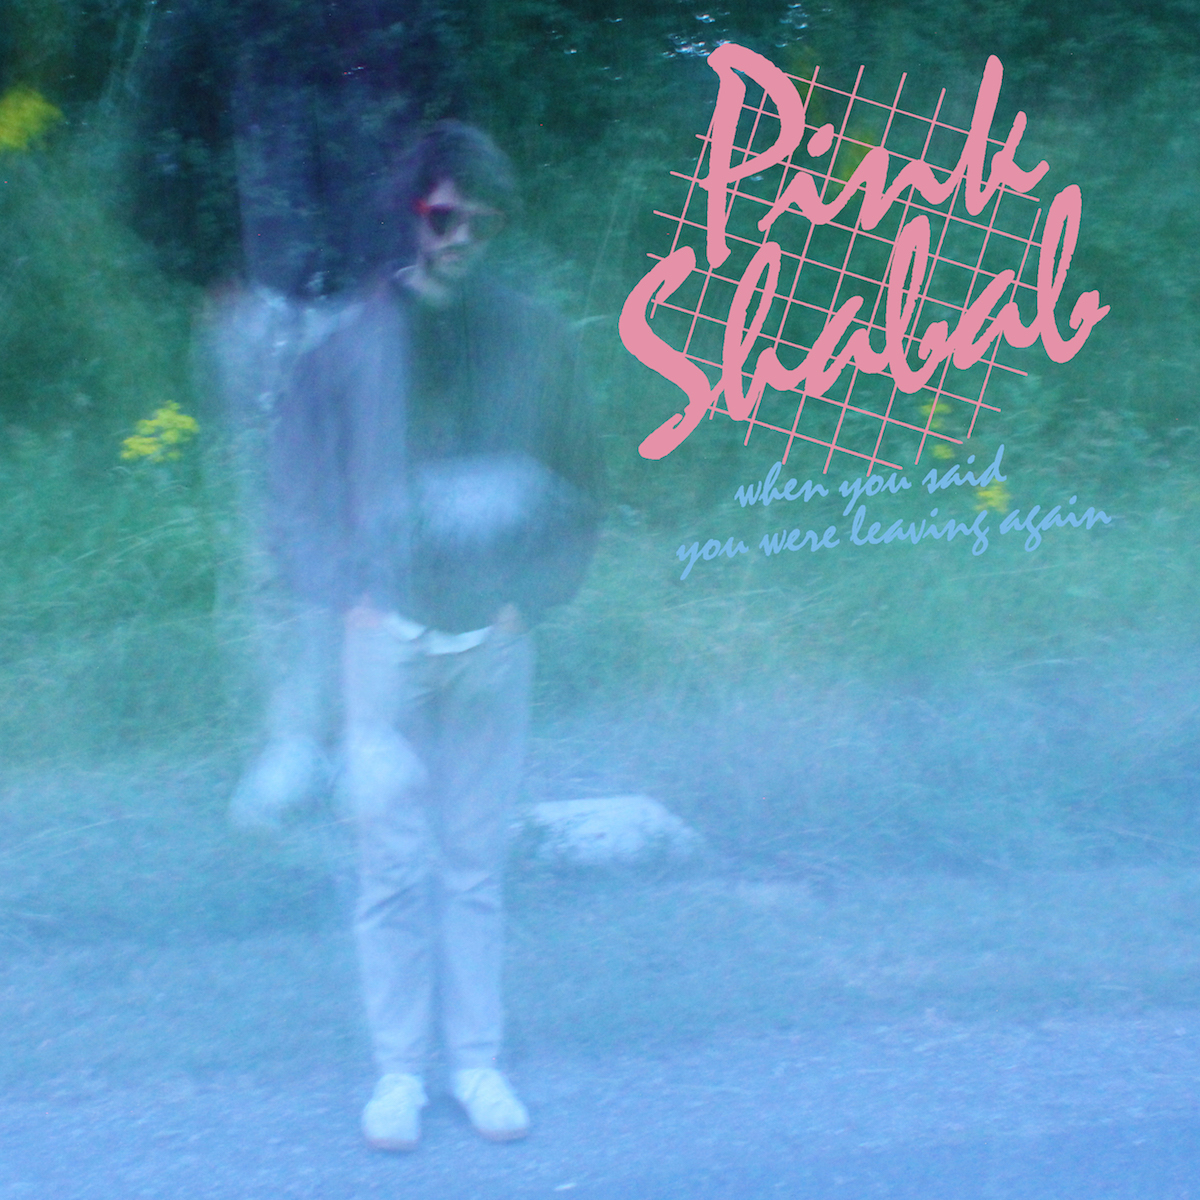 test Twitter Media - Out Today: Pink Shabab ❤︎ When you said you were leaving again ❤︎ - https://t.co/LRBVnjJIQj https://t.co/0IeBFu3jE7